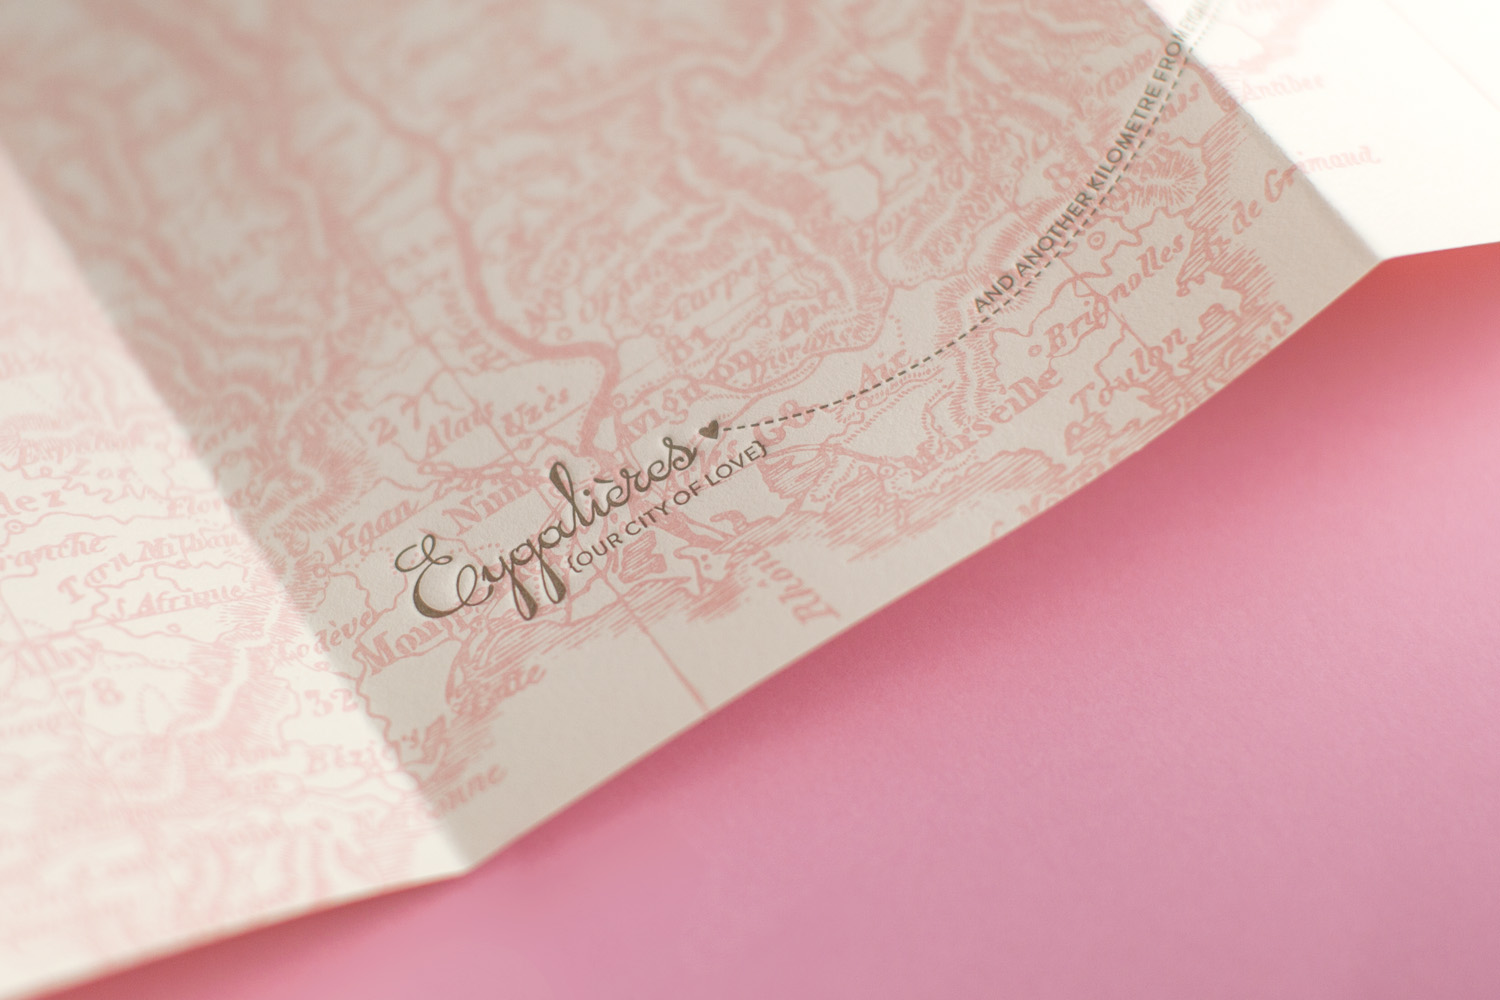 Nadia-And-Chad-Letterpress-Map-Invitation8_11